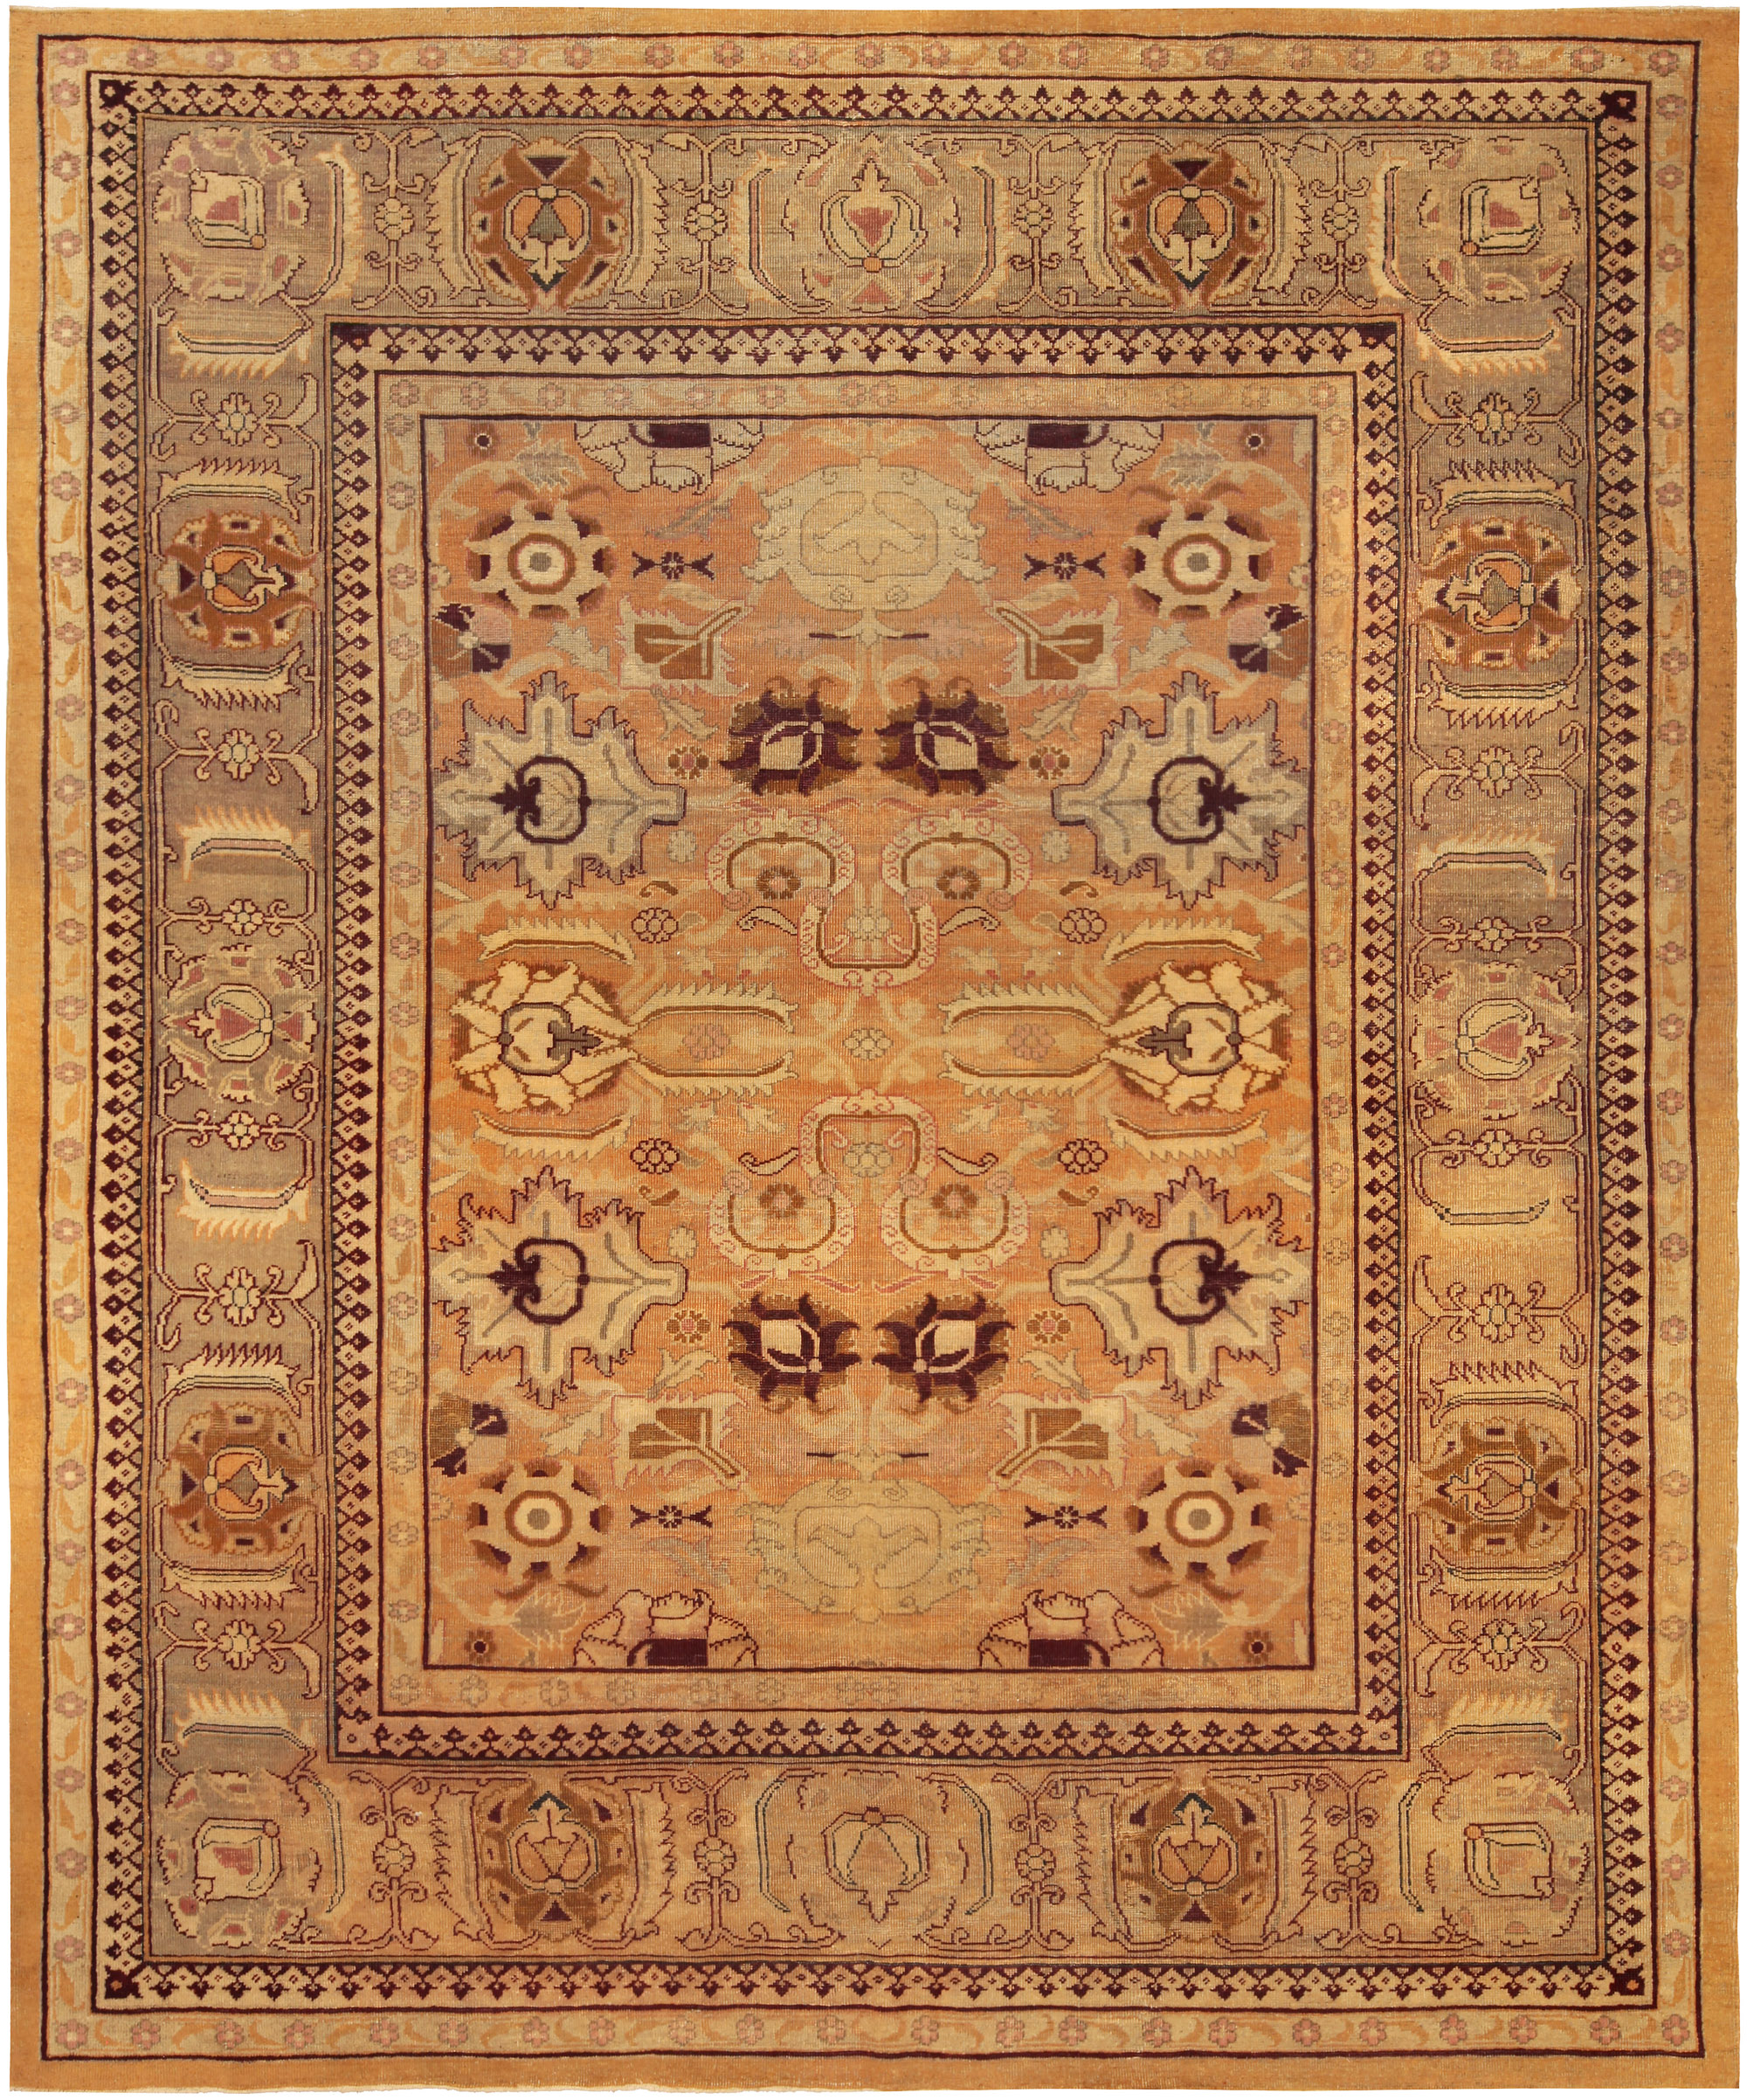 Antique Amritsar Rugs & Carpets For Sale (Indian Amritsar